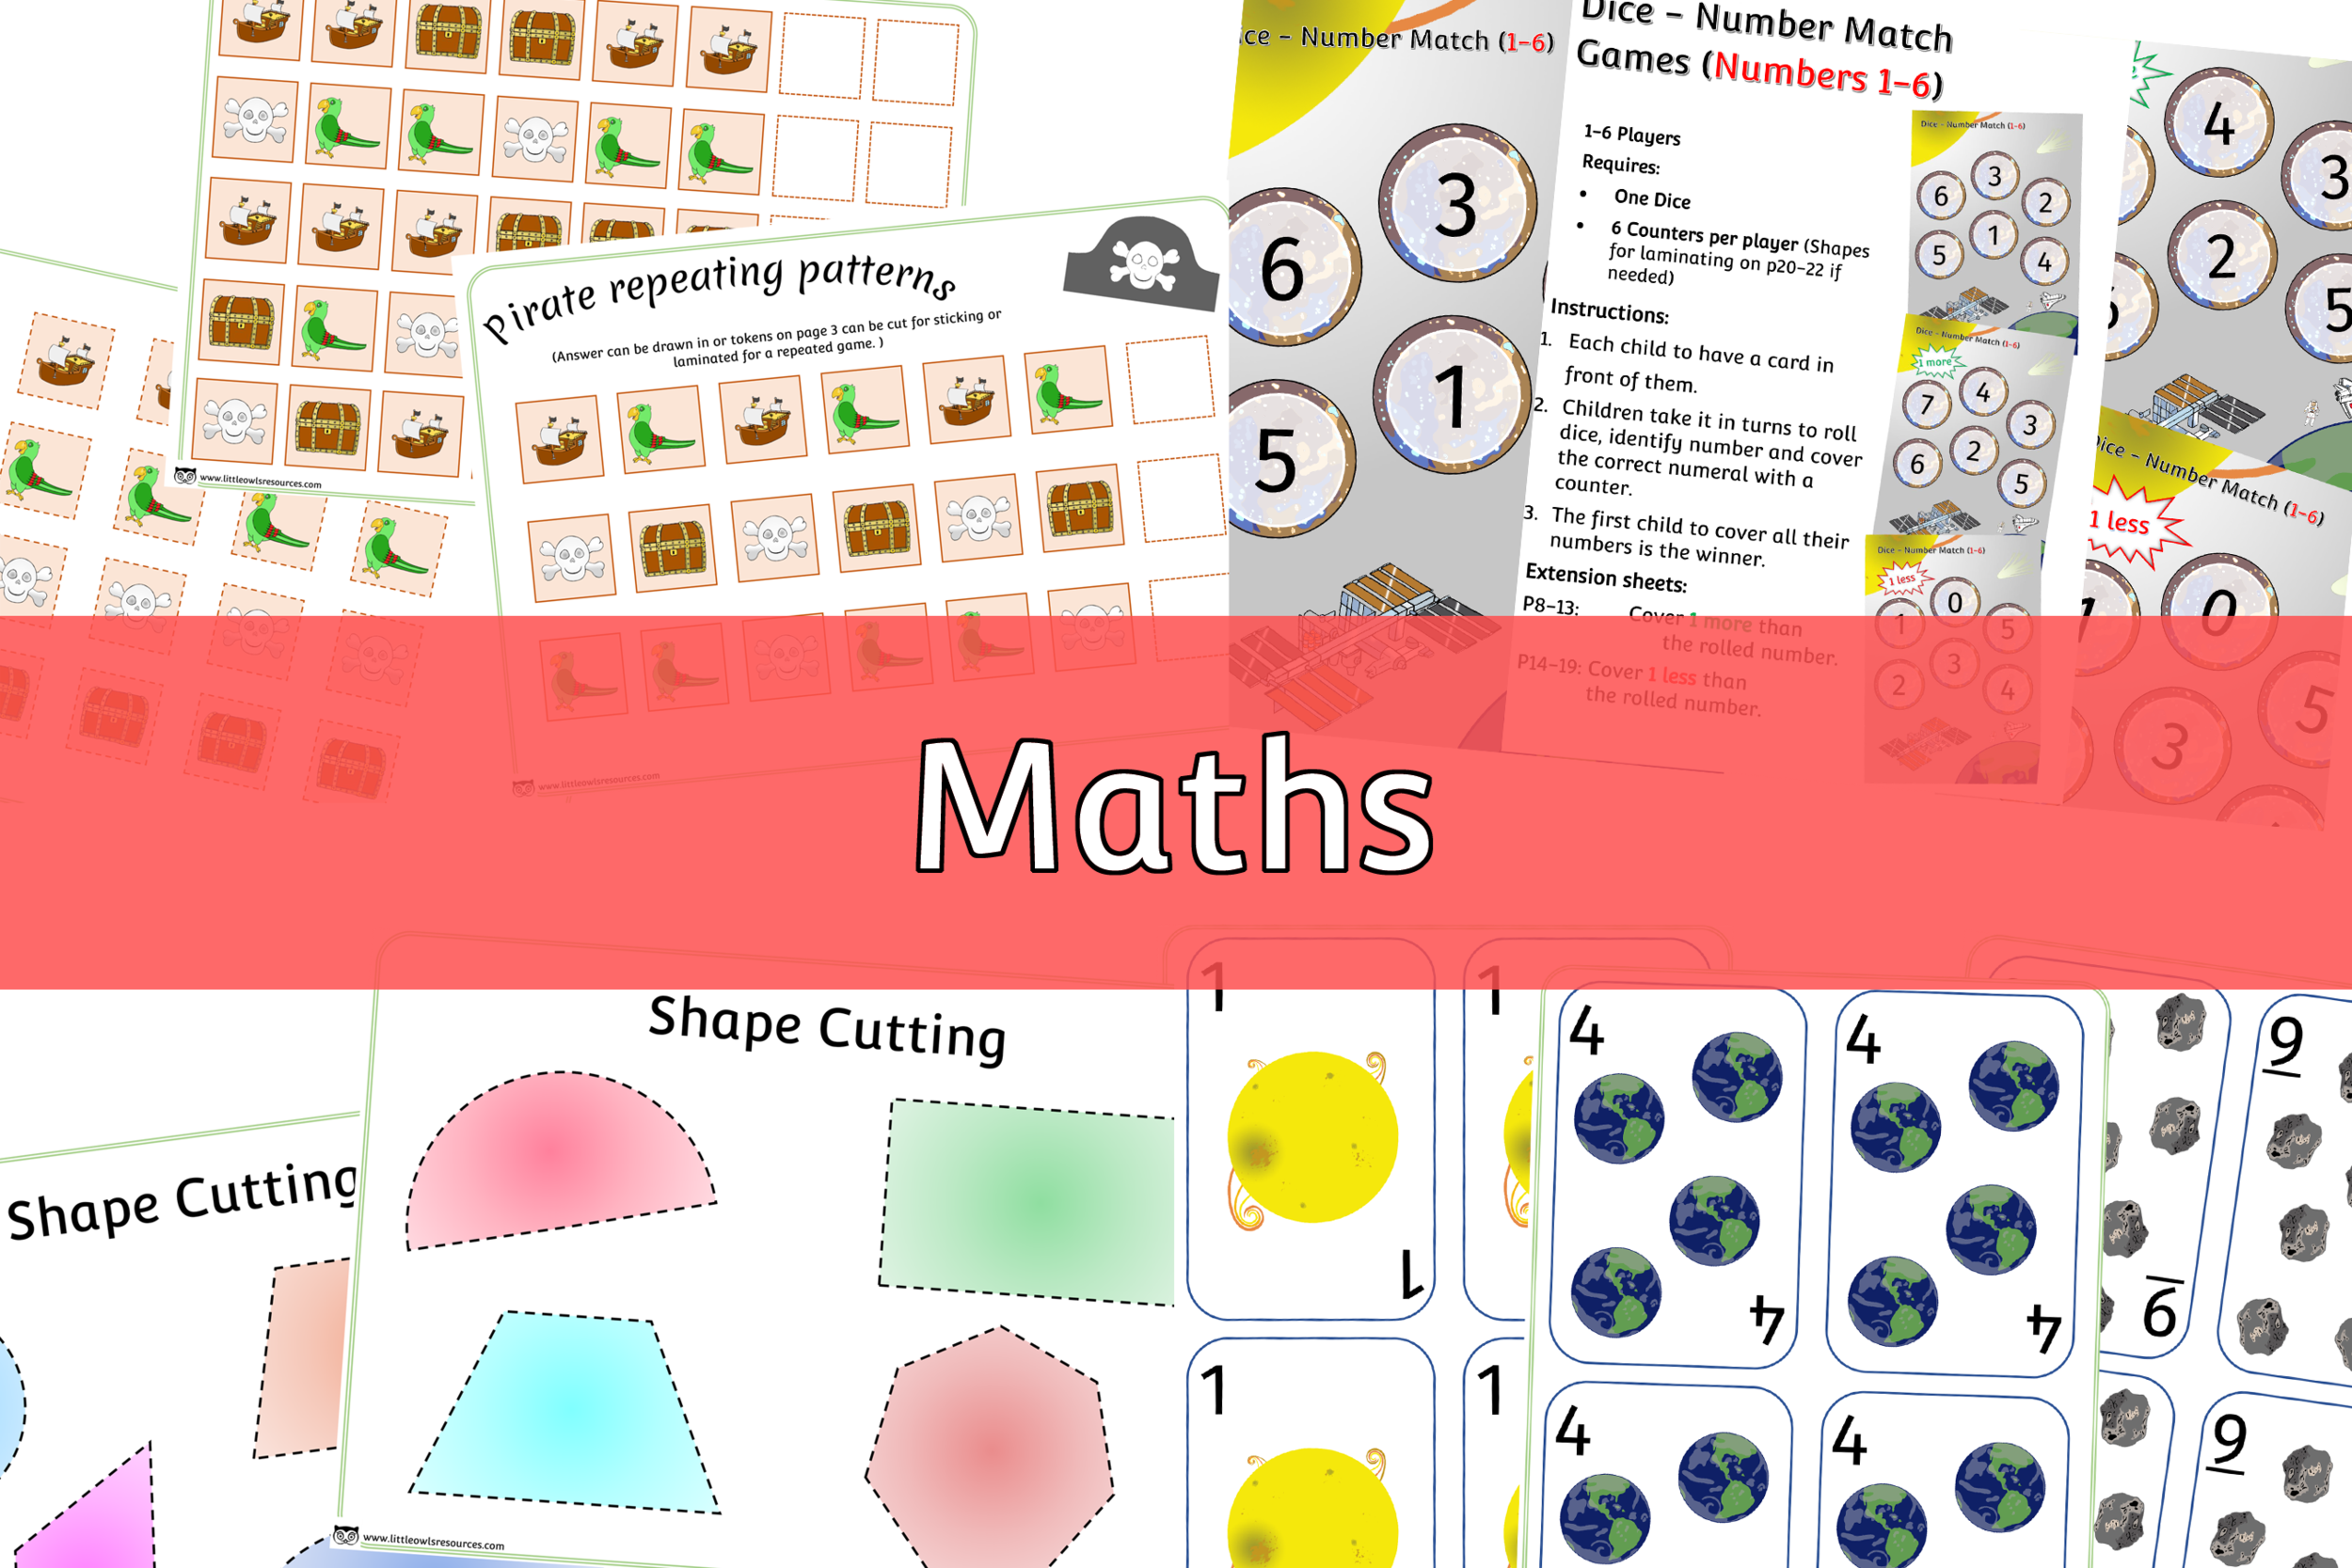 Maths Cover.png